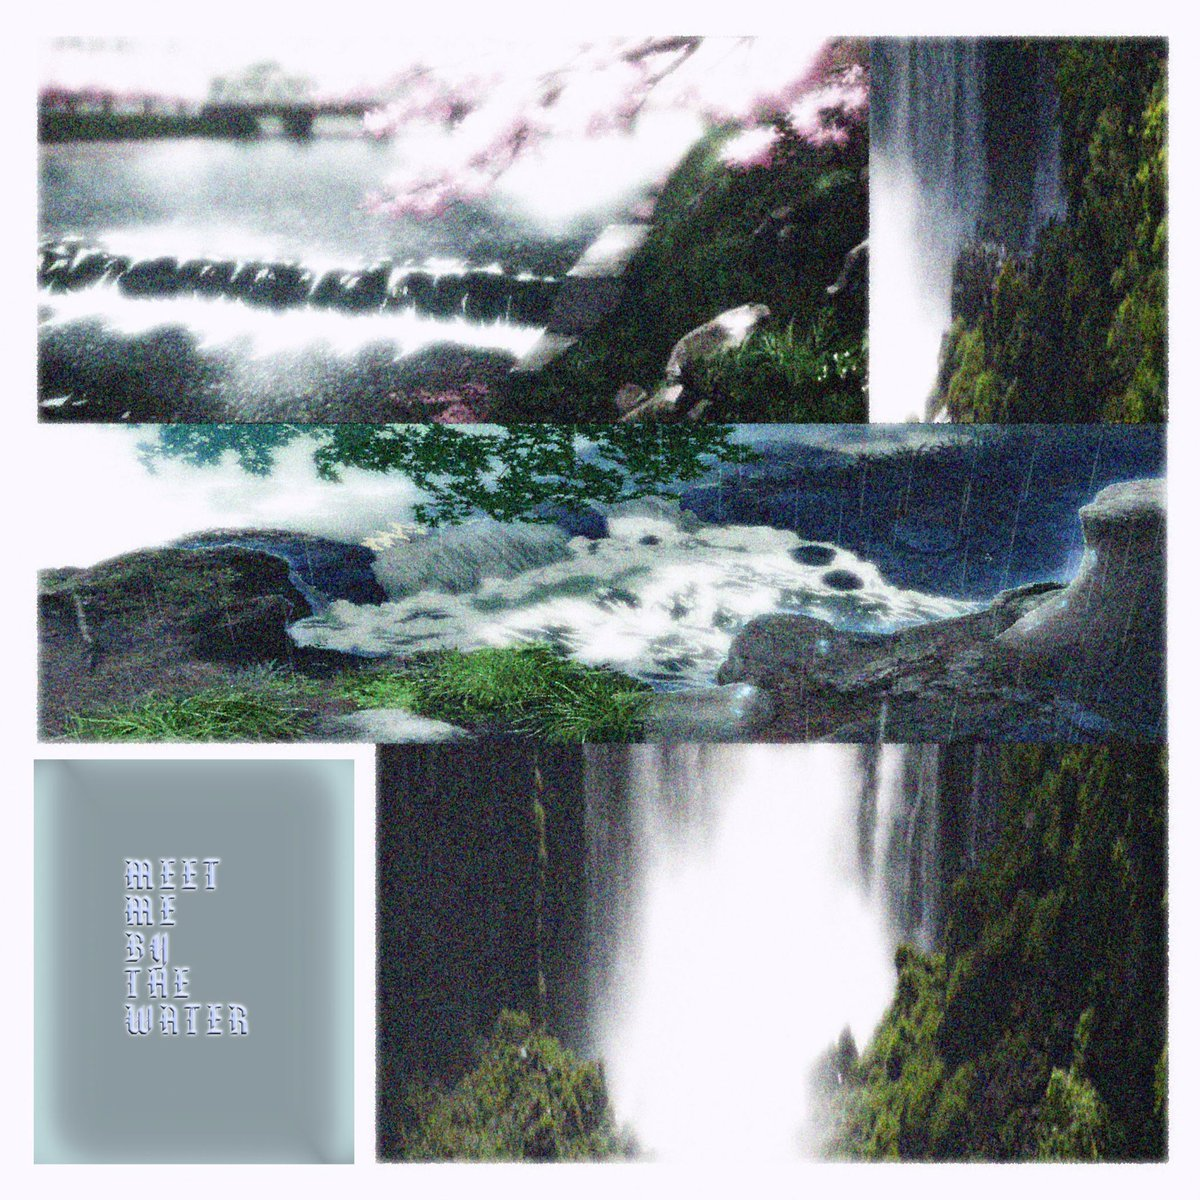 MUST LISTEN: Aime Janelle 'Meet Me By The Water' EP